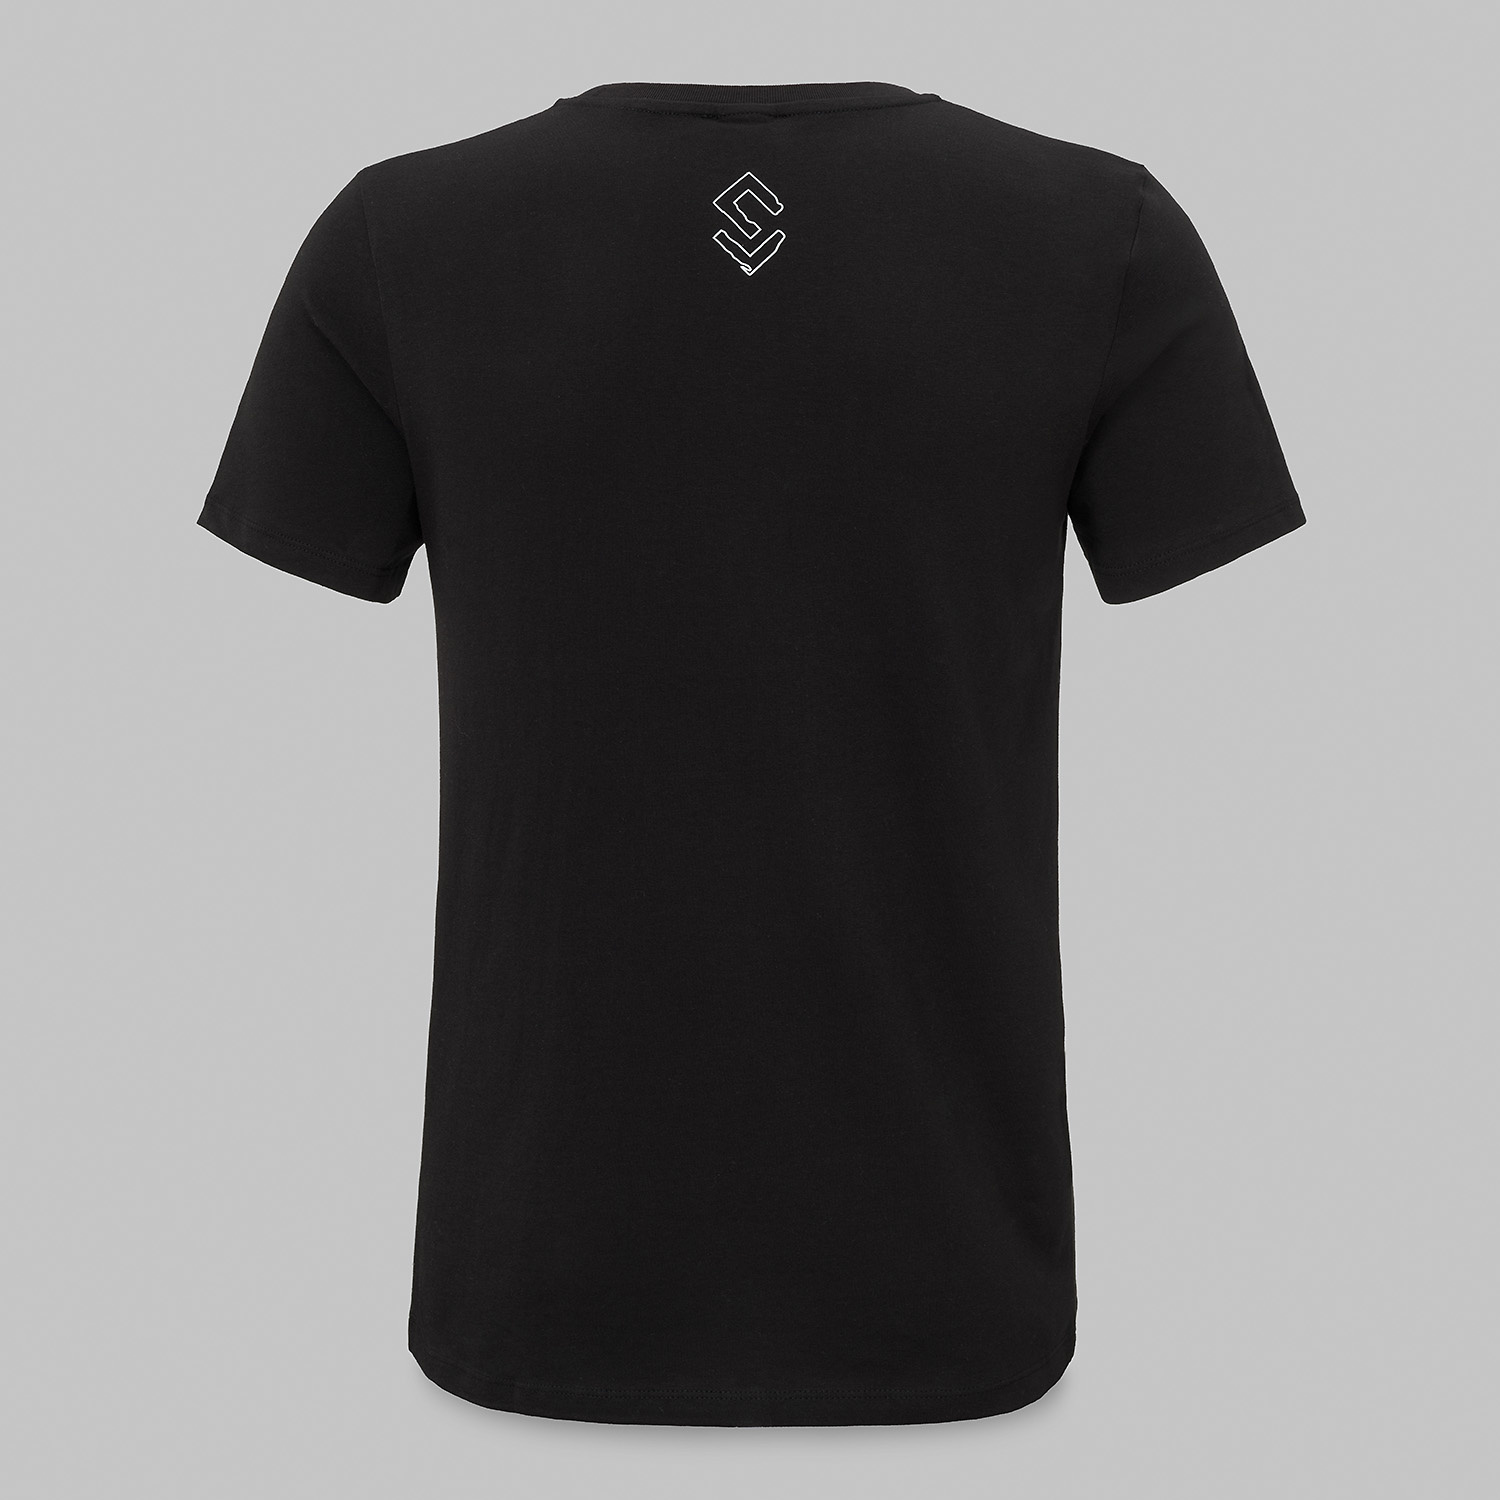 Sefa t-shirt black/white-3